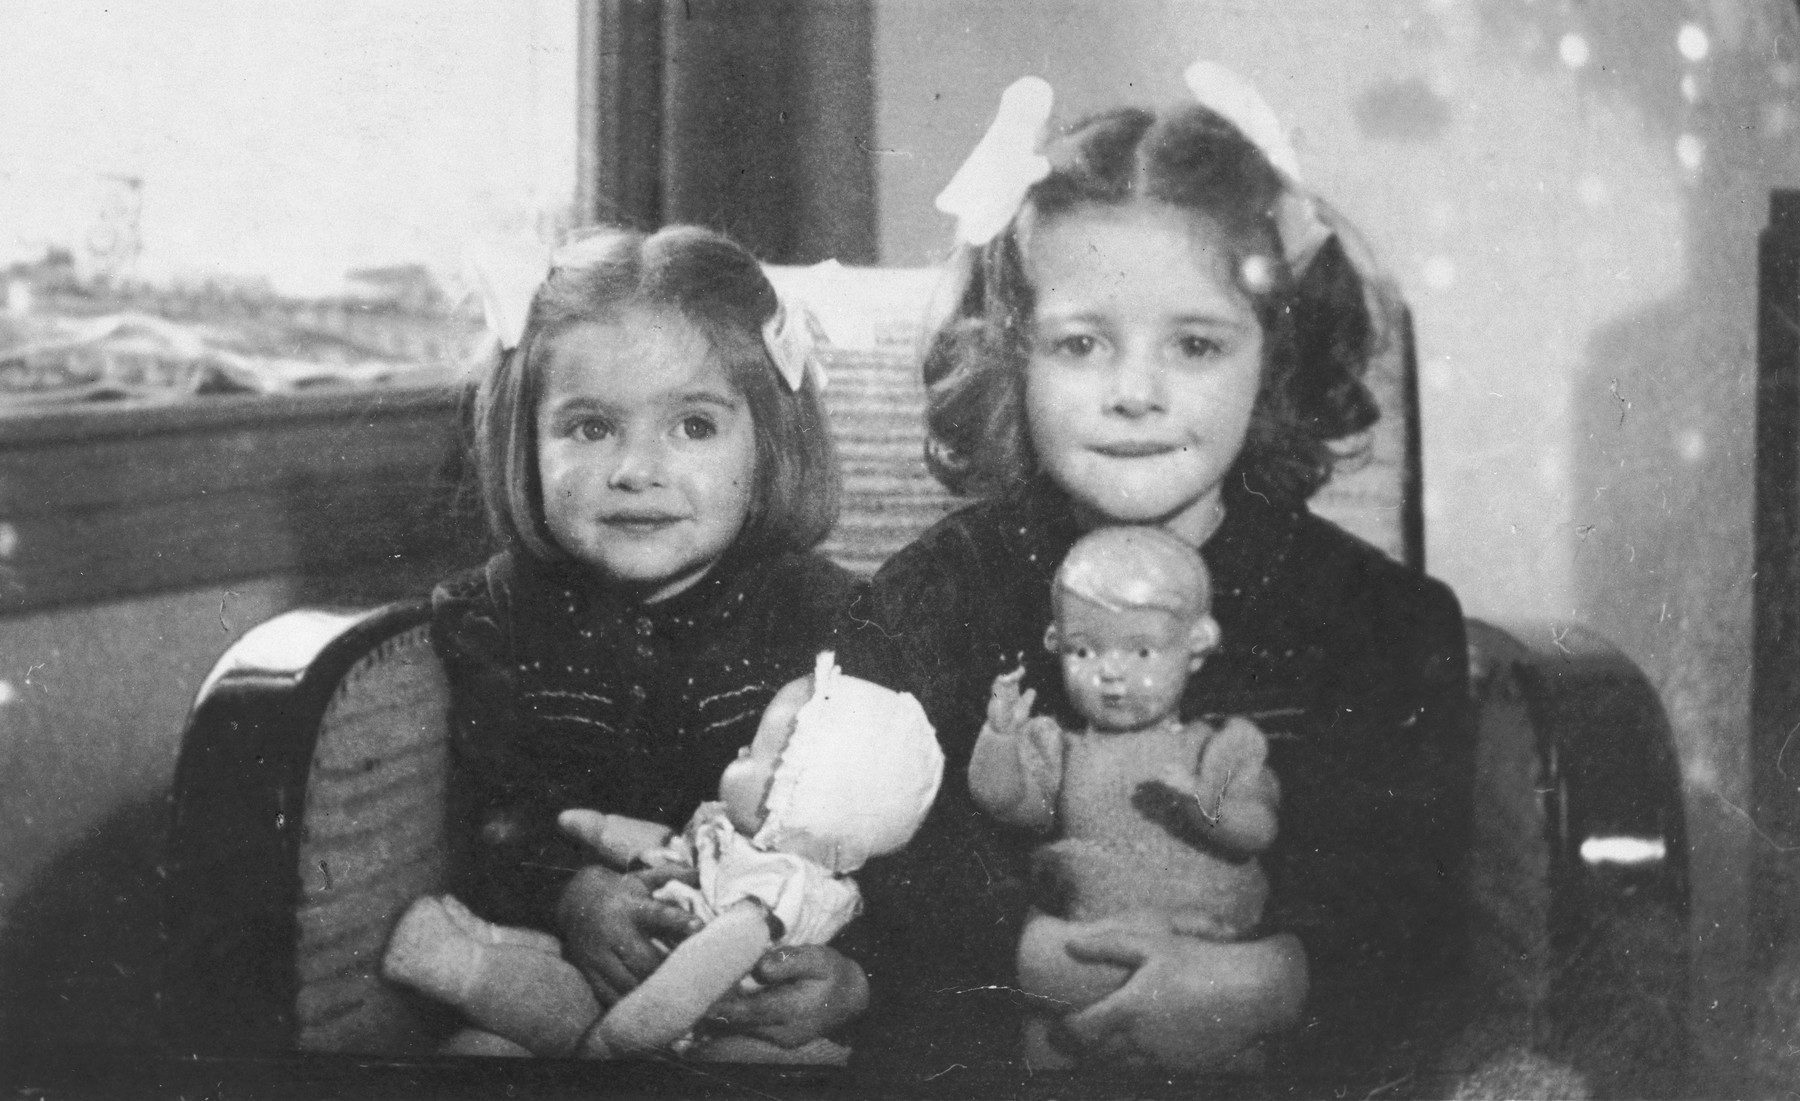 Two Jewish sisters pose with their dolls in their home in The Hague.  Pictured are Eva (right) and Leana (left) Münzer.  Both later perished in Auschwitz.